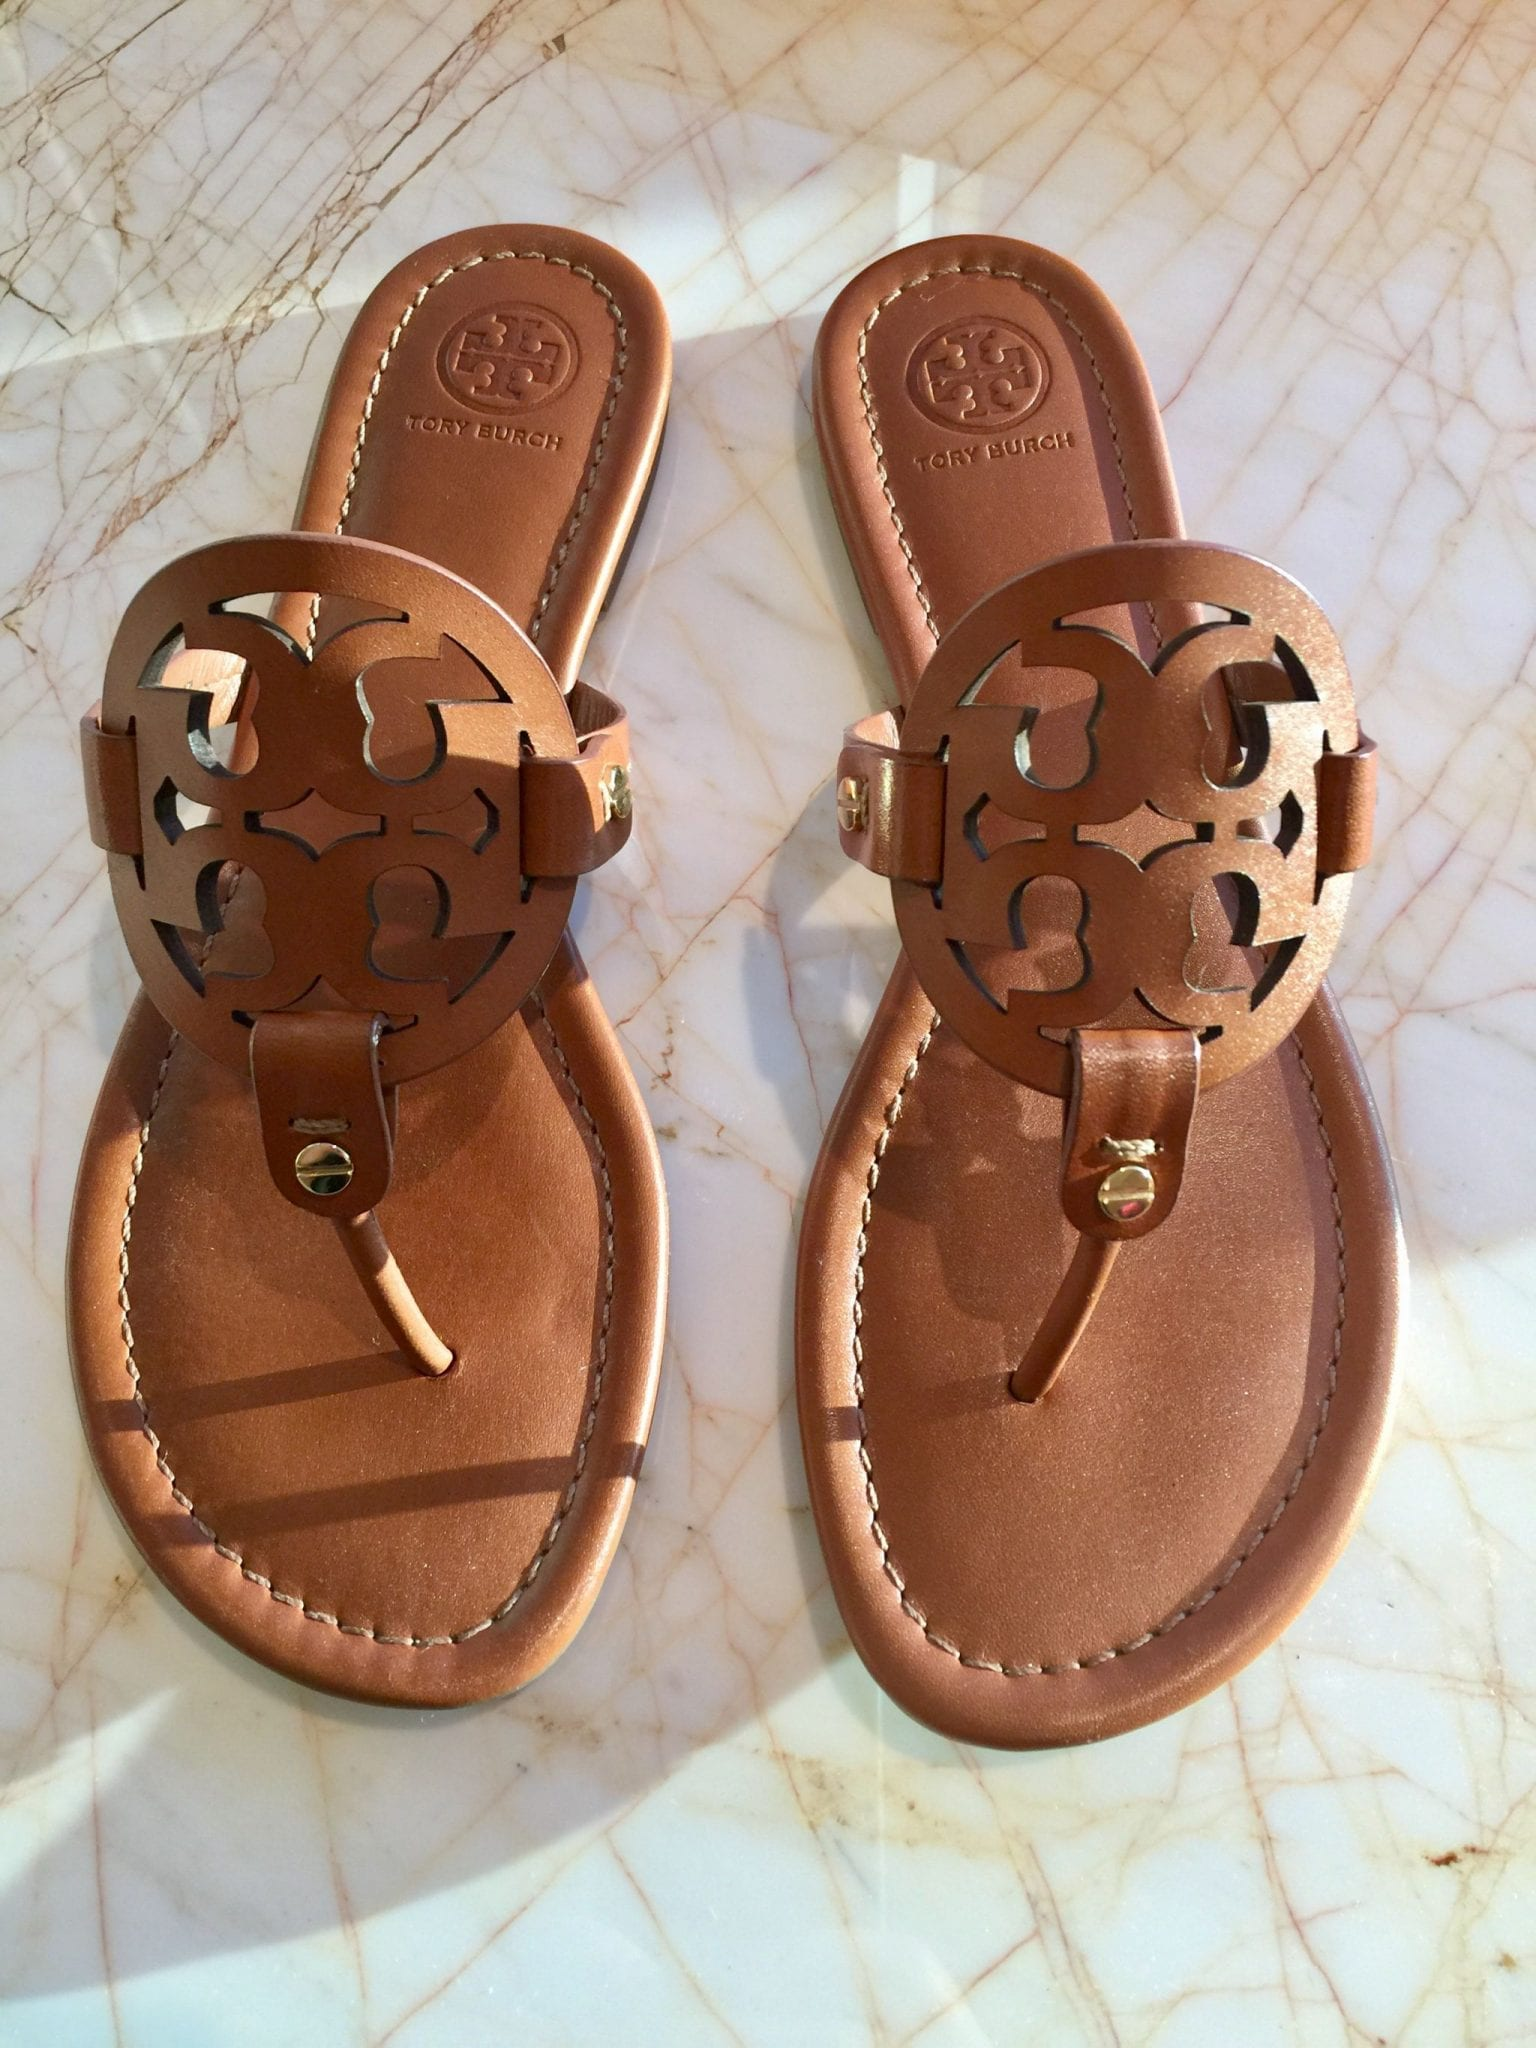 3364deaa544f My Summer Sandals  Tory Burch Miller Sandal in Vintage Vachetta Leather